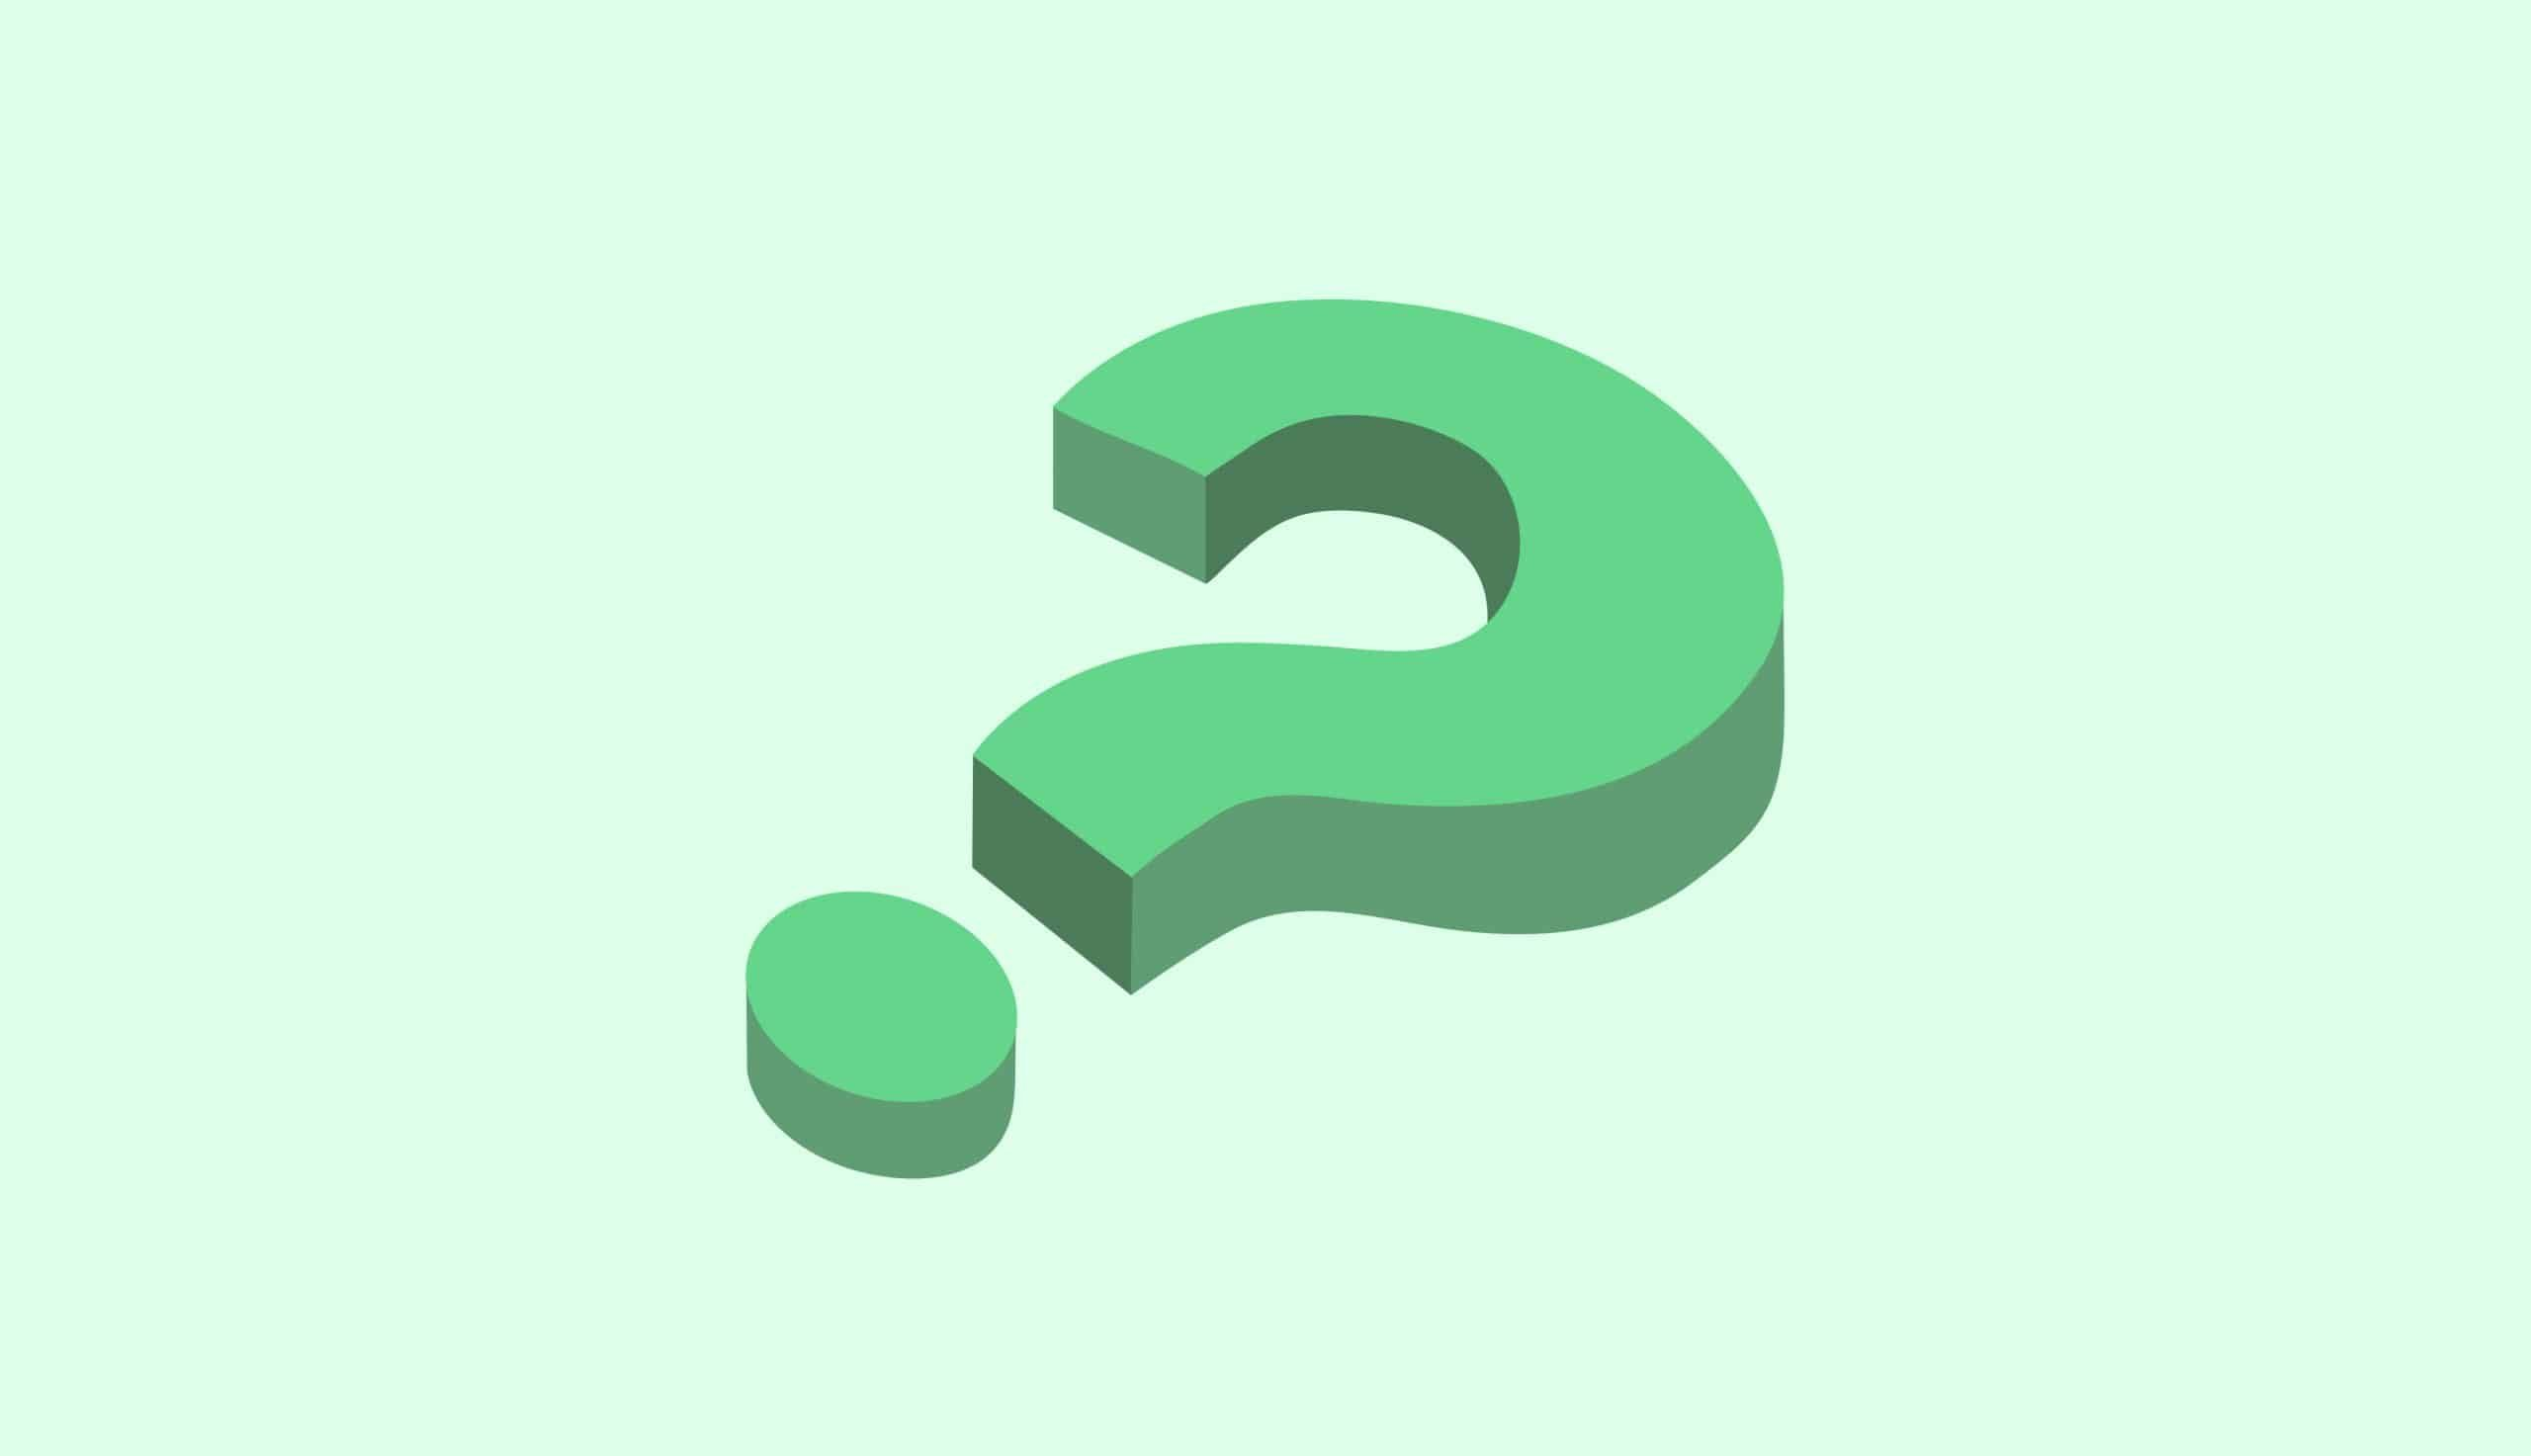 green question mark on green background